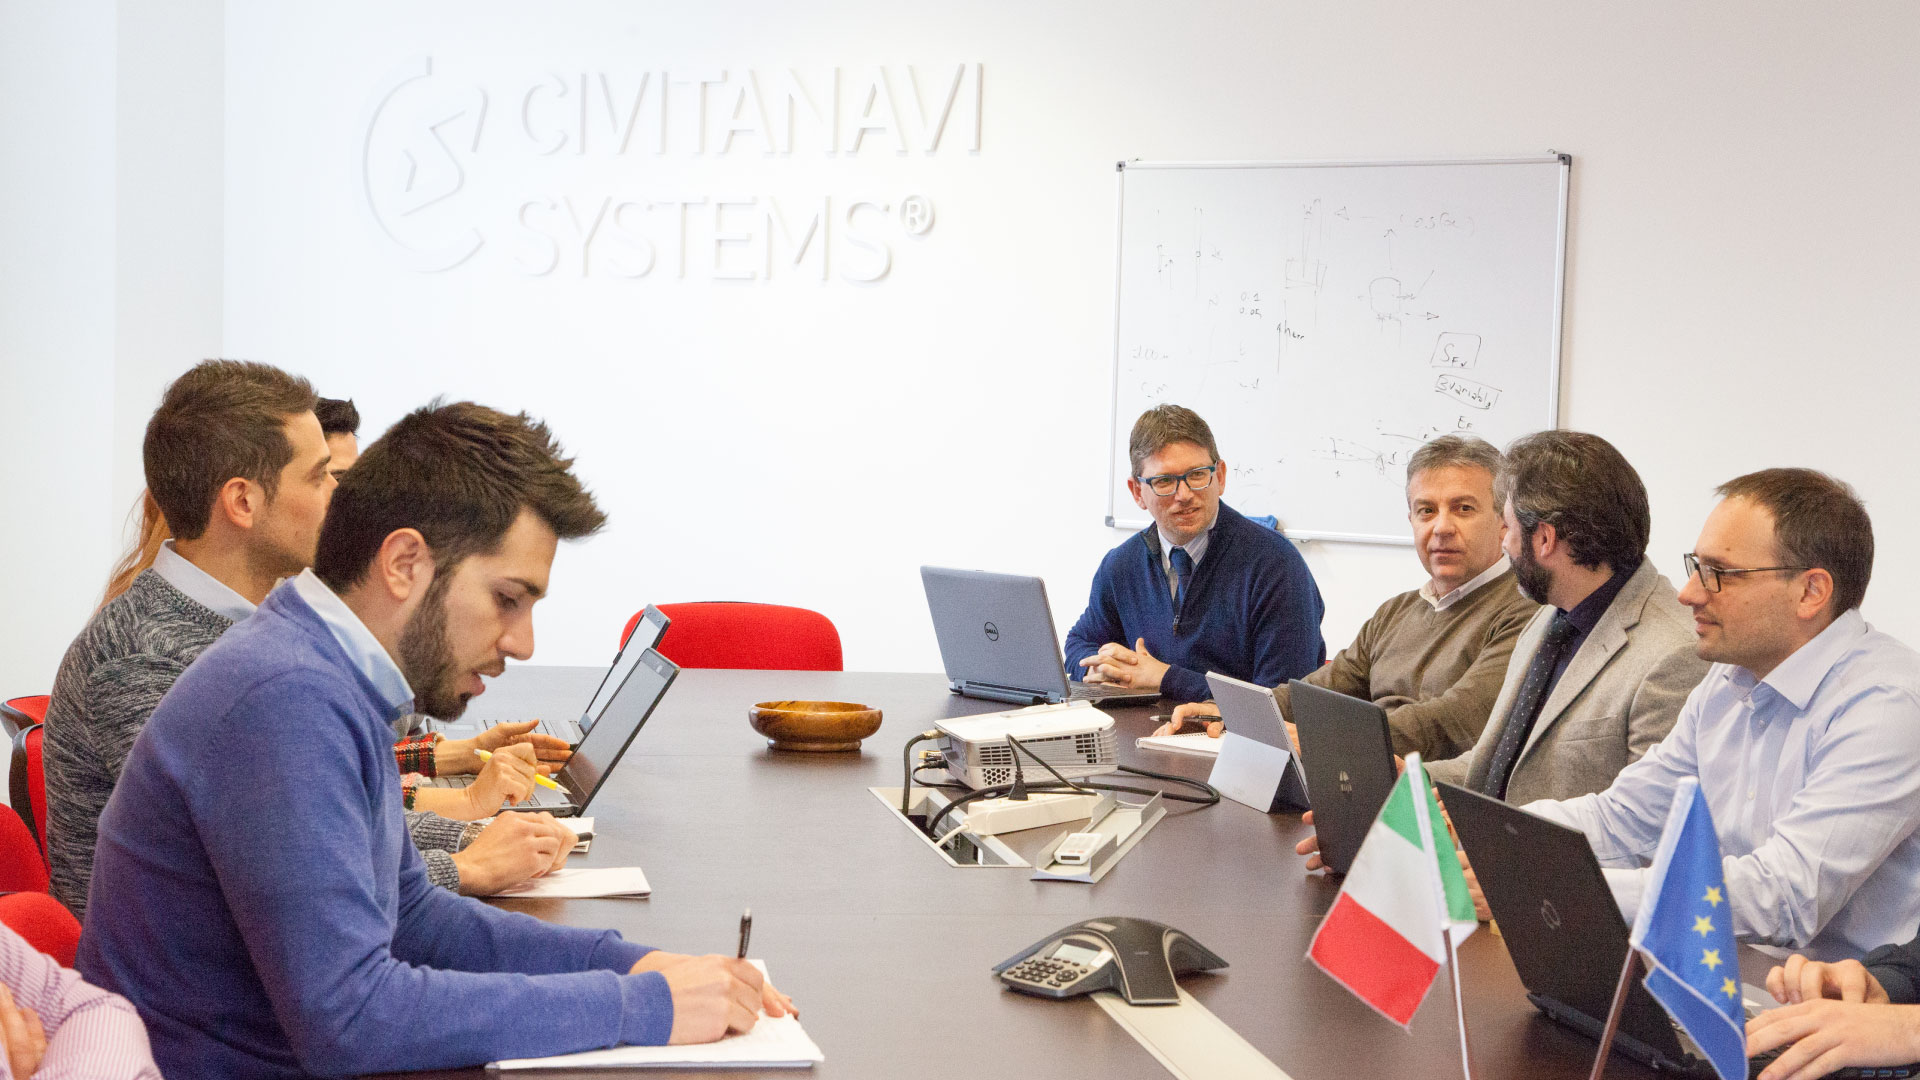 civitanavi-systems-team-company